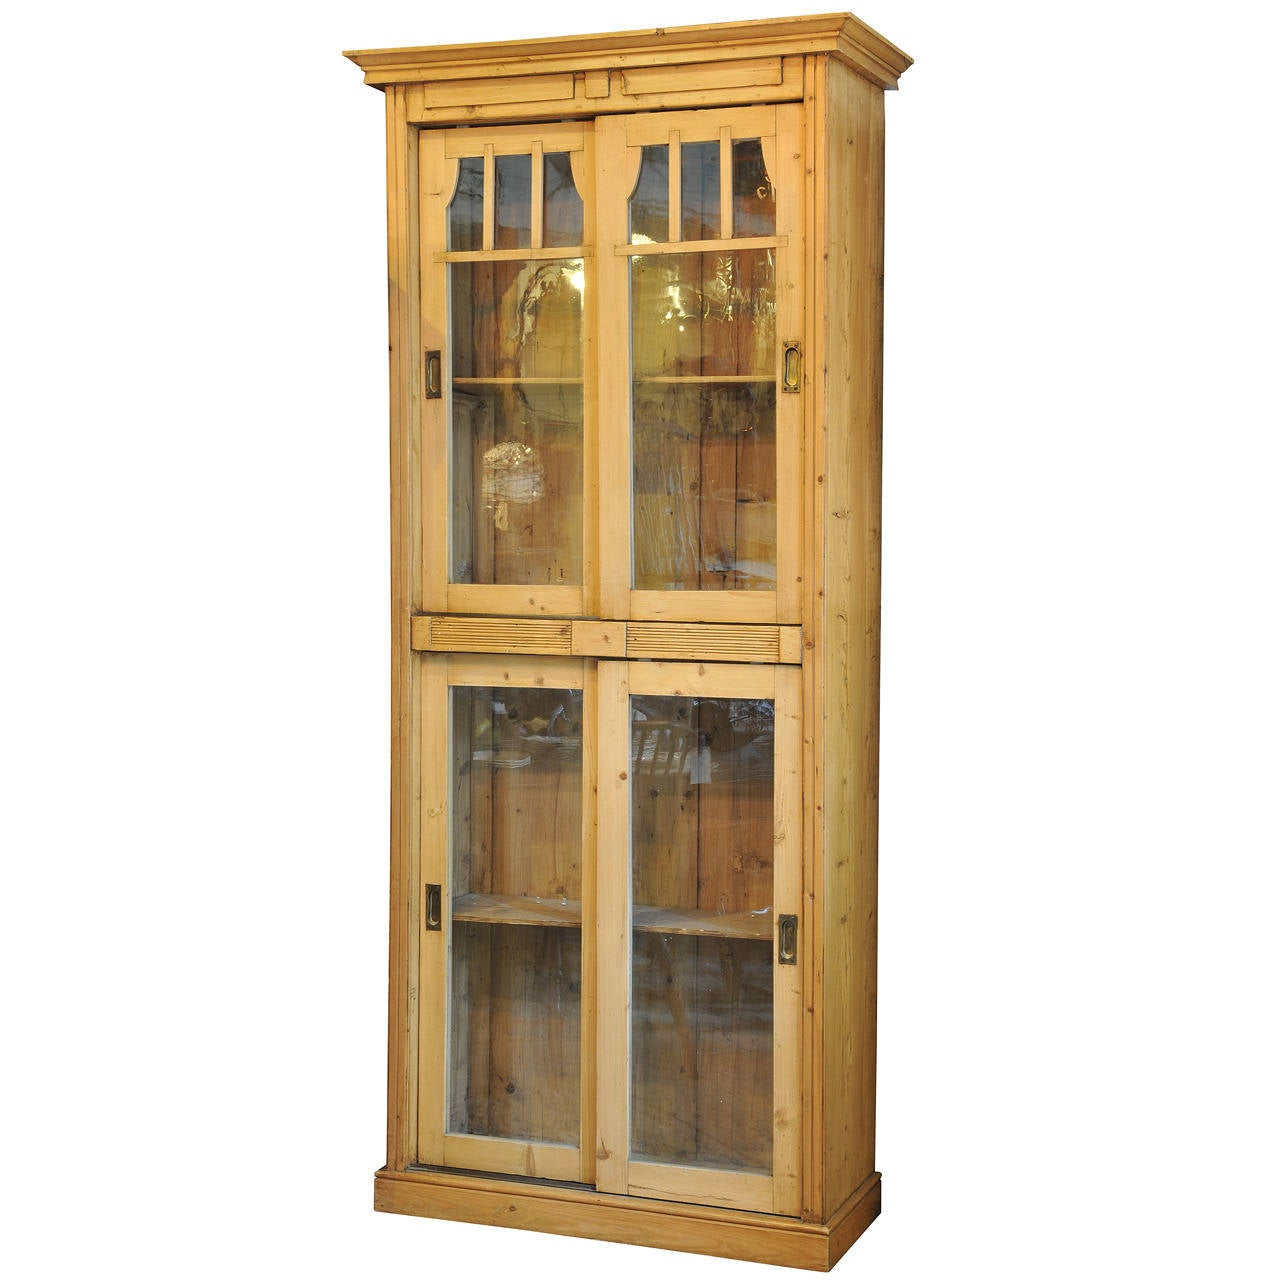 Tall Antique Pine Pantry Cupboard 1